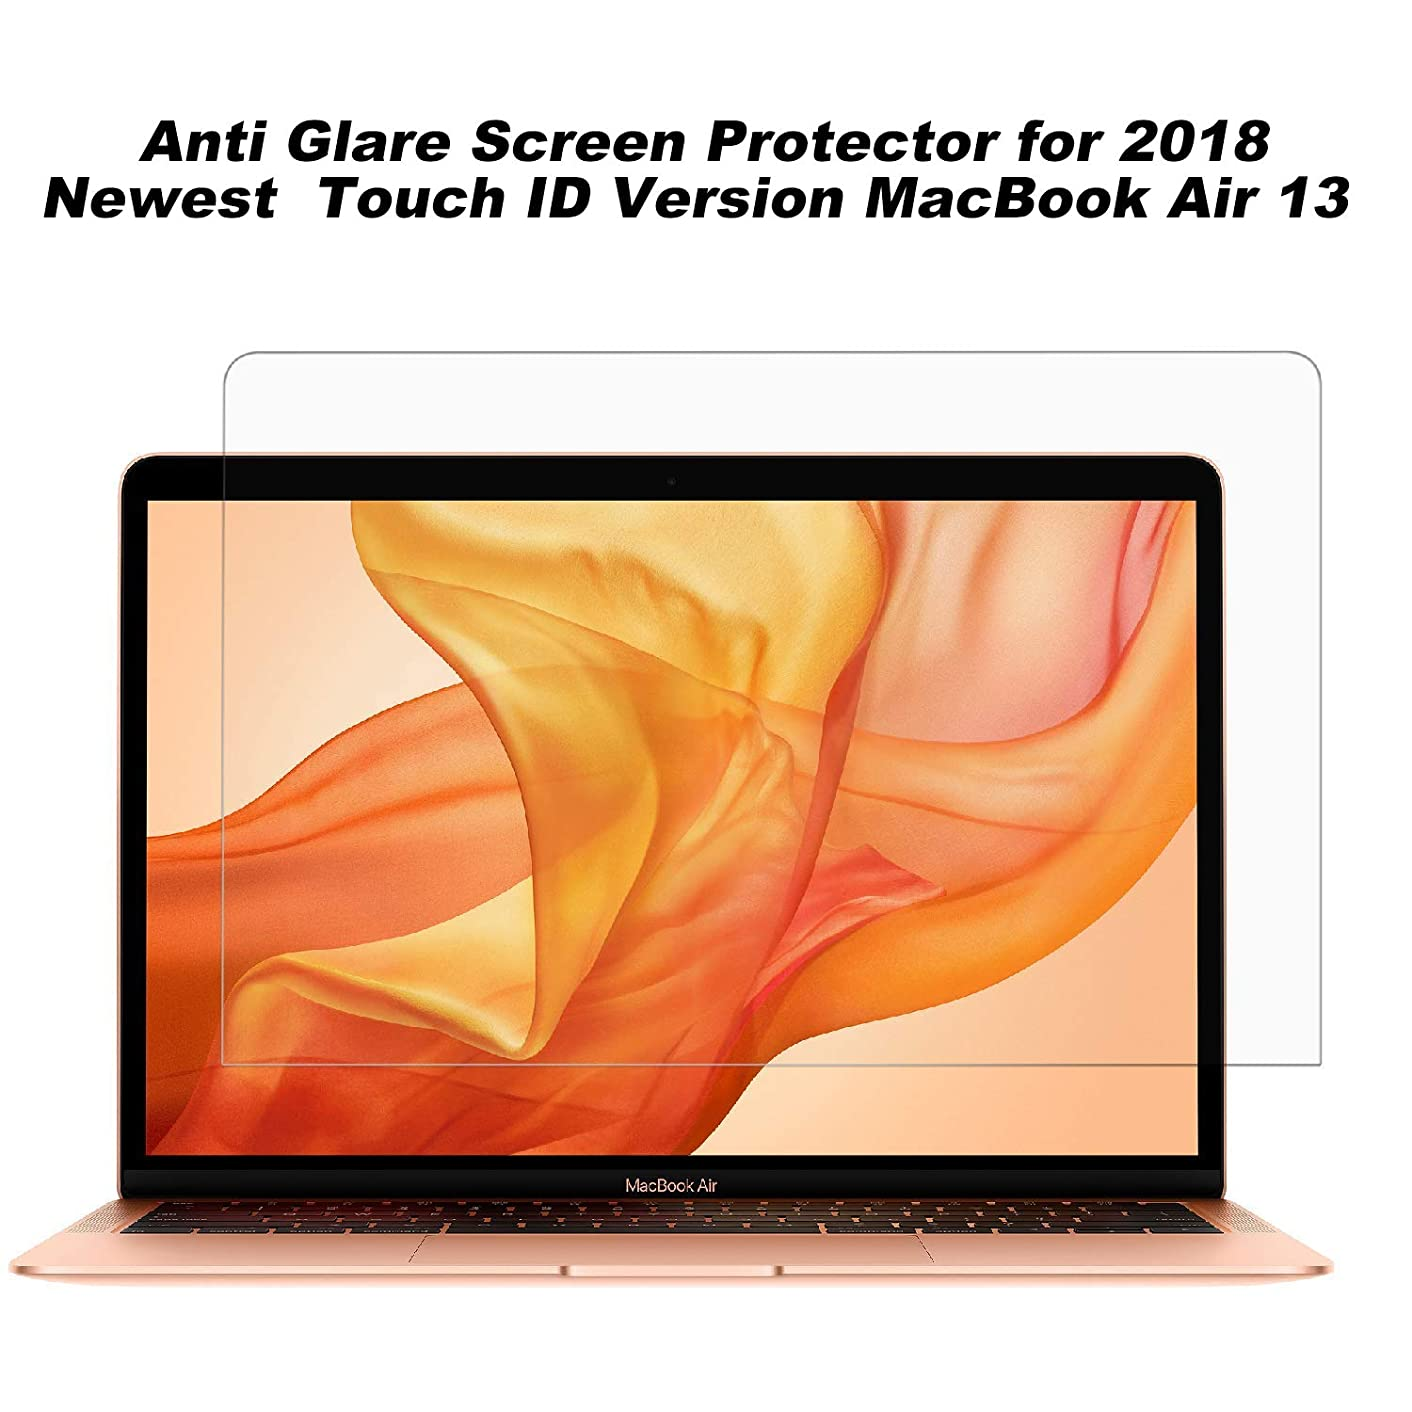 2 Pack Anti Glare Screen Protector Compatible for 2018 Newest MacBook Air 13 with Touch ID Version A1932 (Matte)